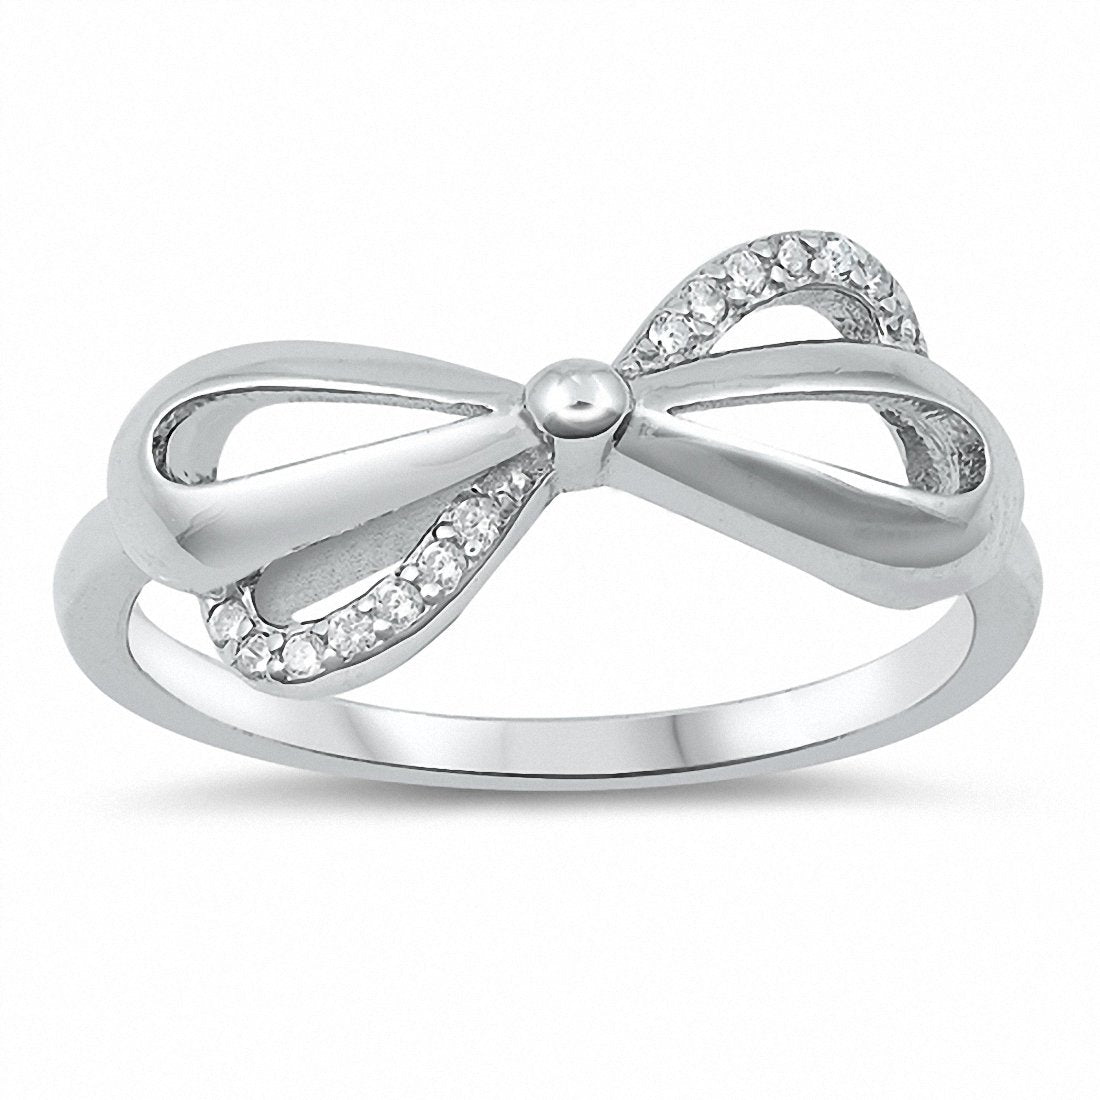 582bd8593 Ribon Bow Ring Round Cubic Zirconia 925 Sterling Silver Choose Color ...